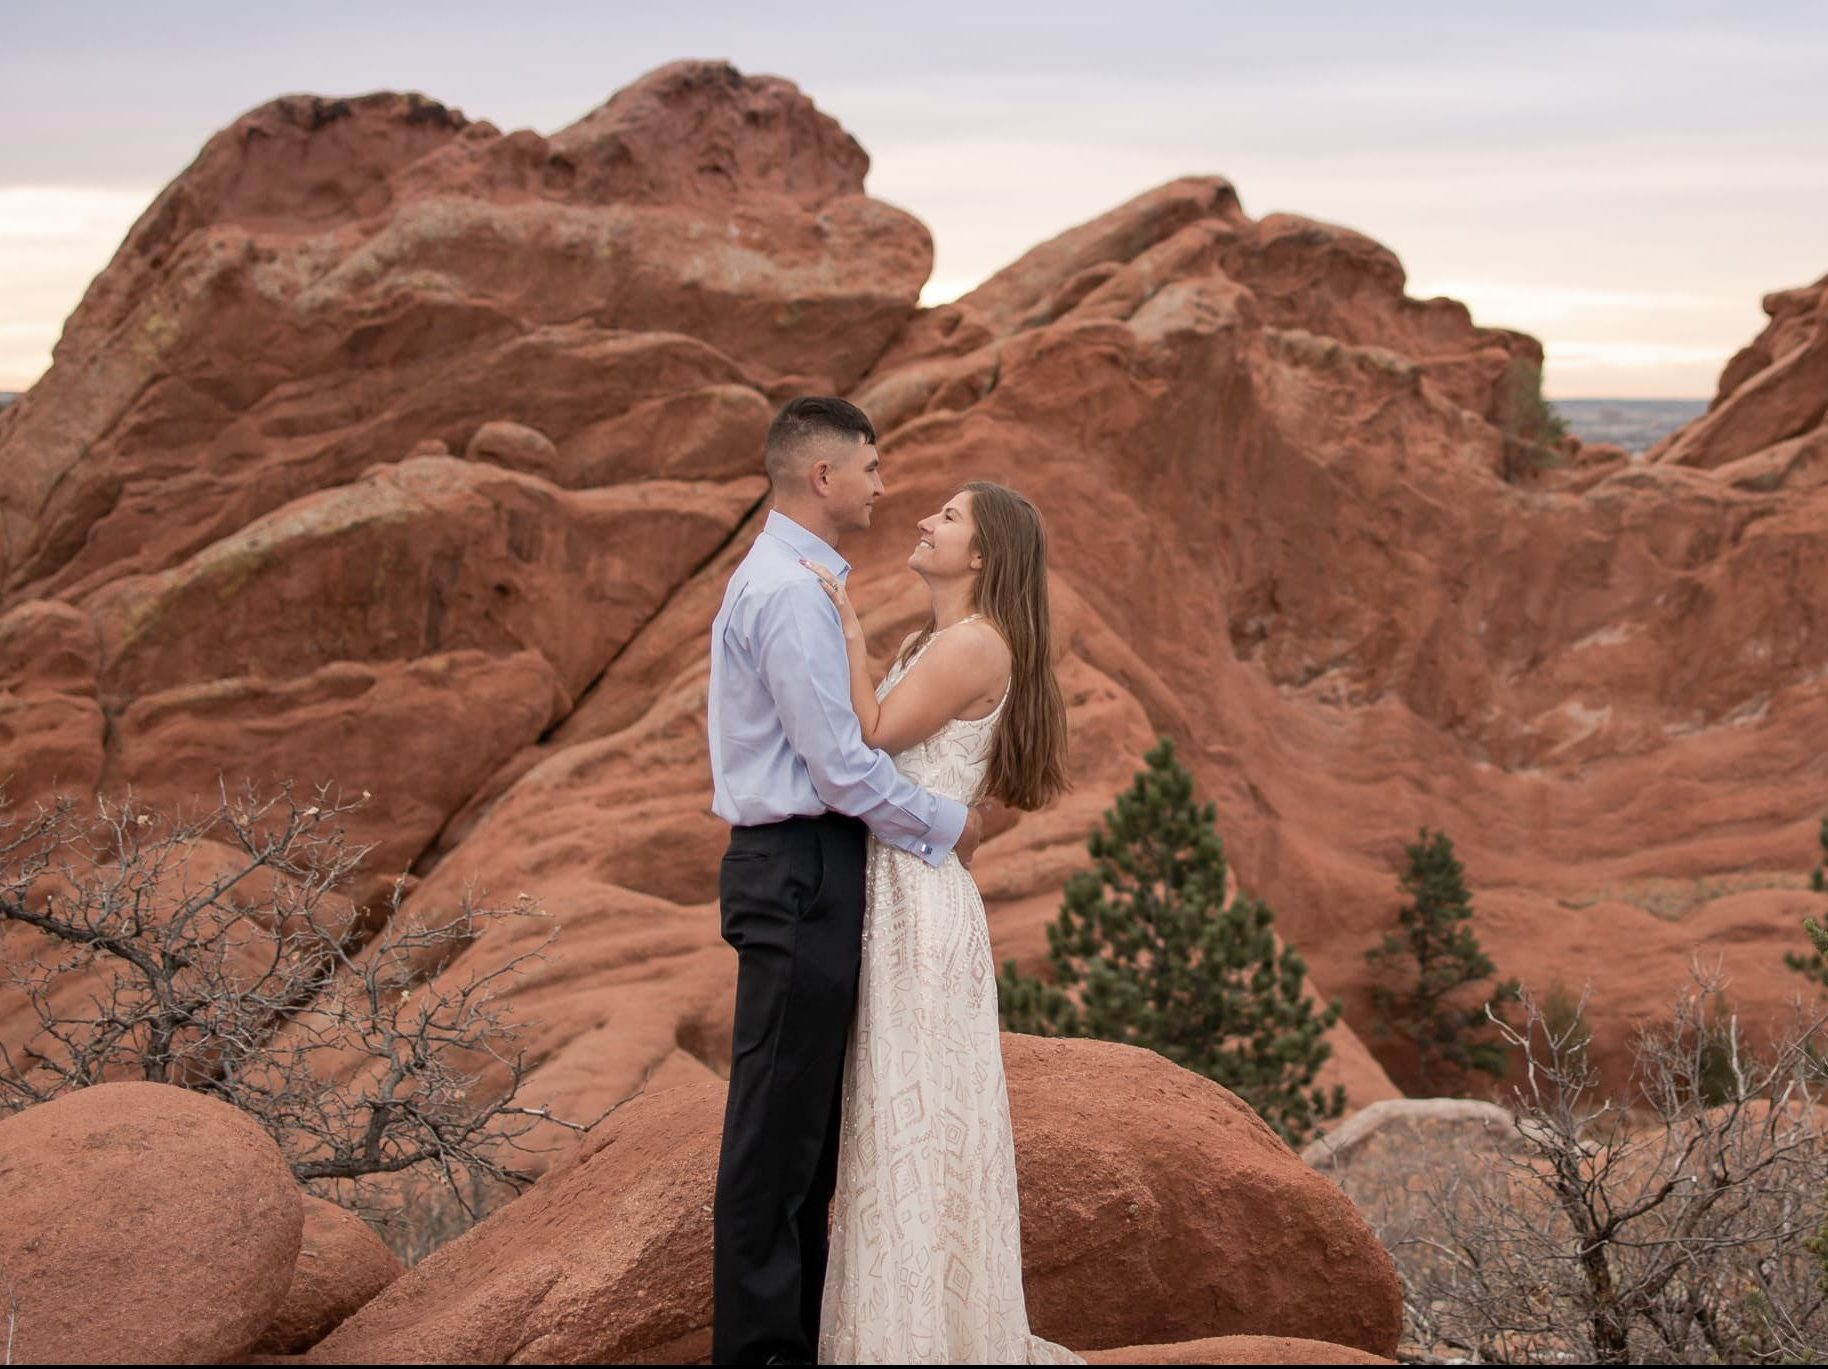 Bride and groom happily looking at each other in Garden of the Gods park in Colorado